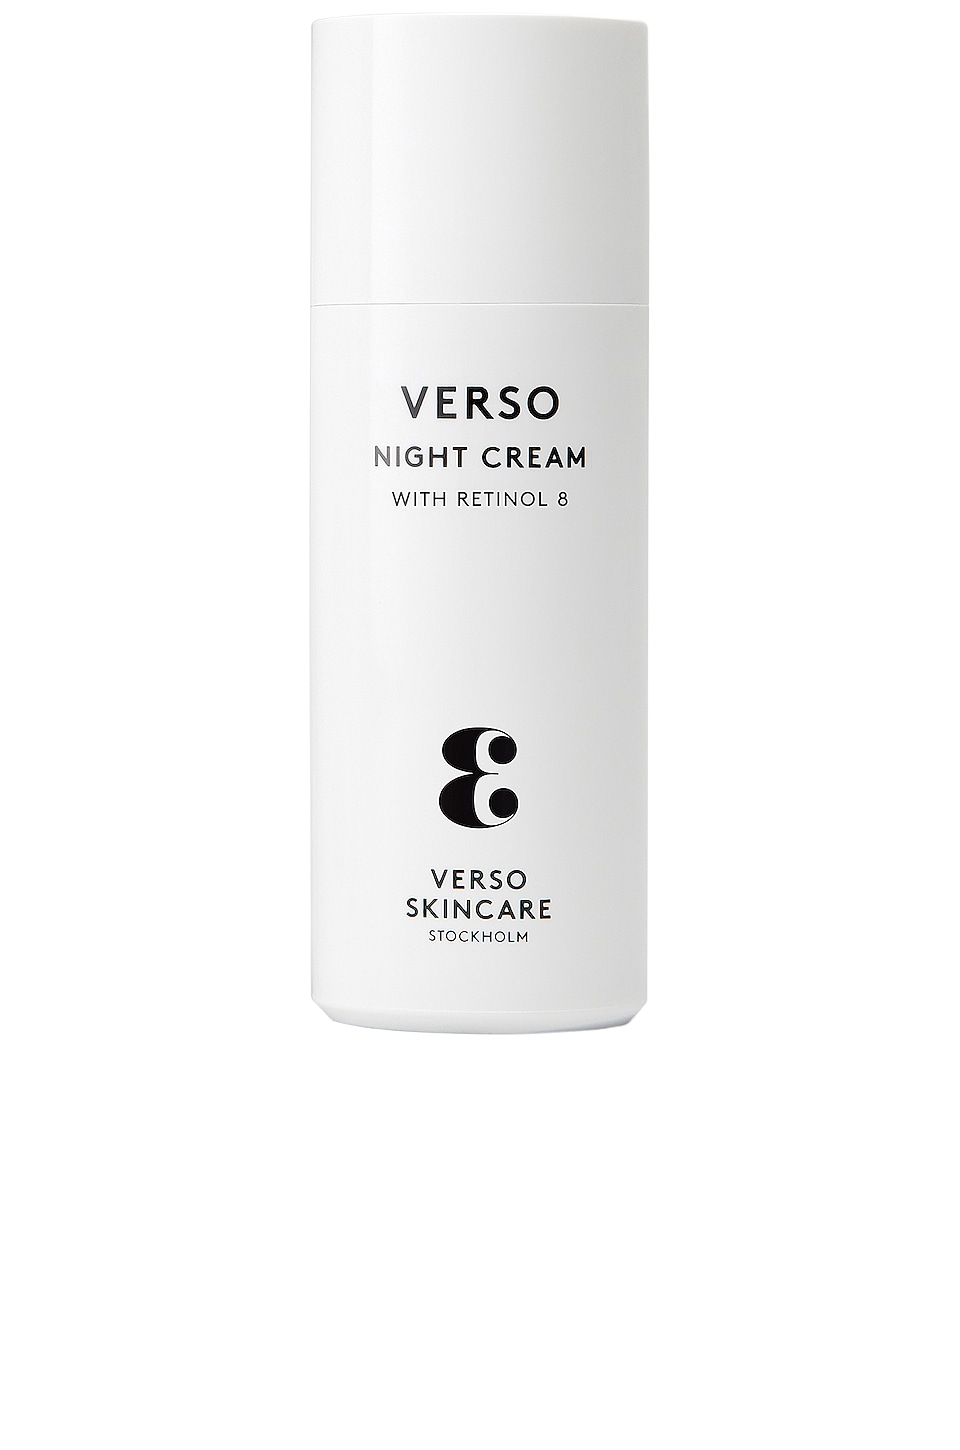 VERSO SKINCARE Night Cream